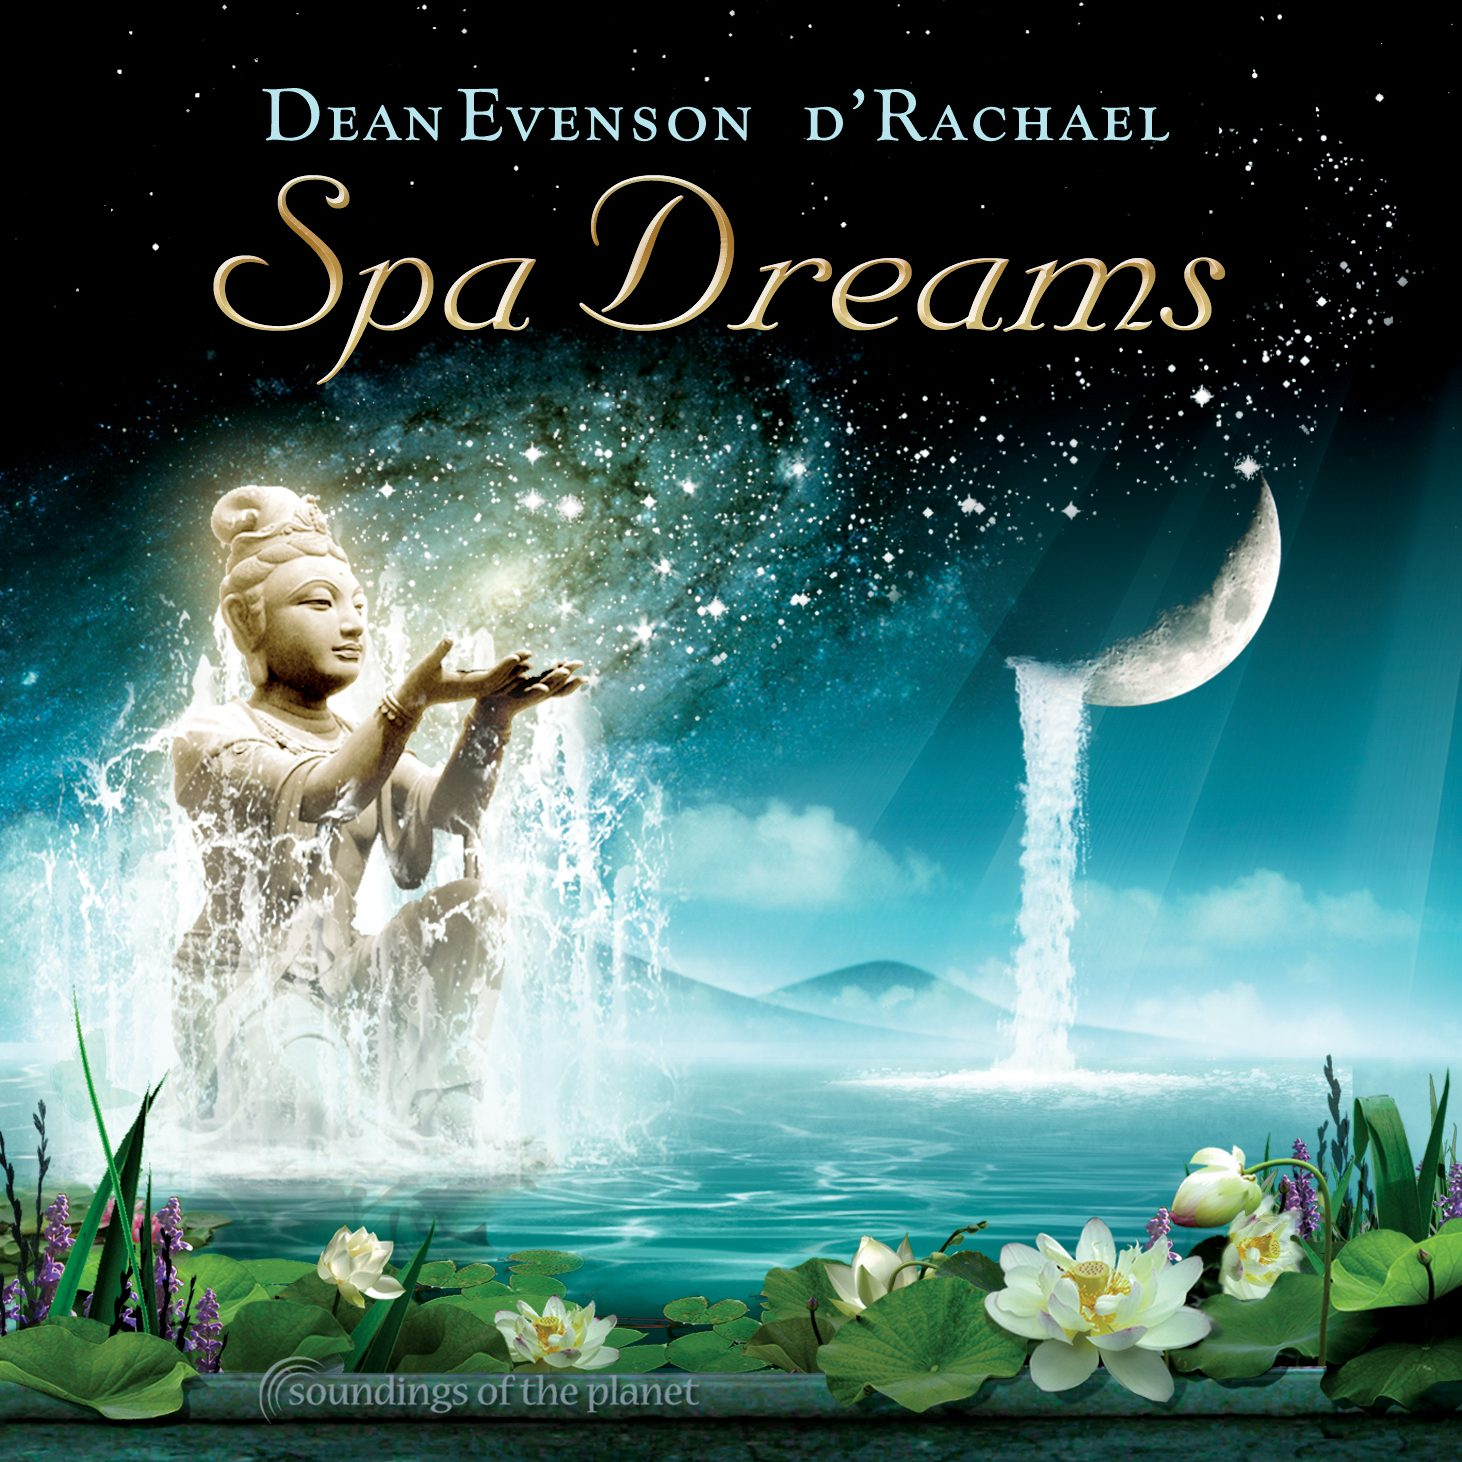 Spa Dreams by Soundings of the Planet - CD Design/Illustration by Bob Paltrow. Client: Soundings of the Planet